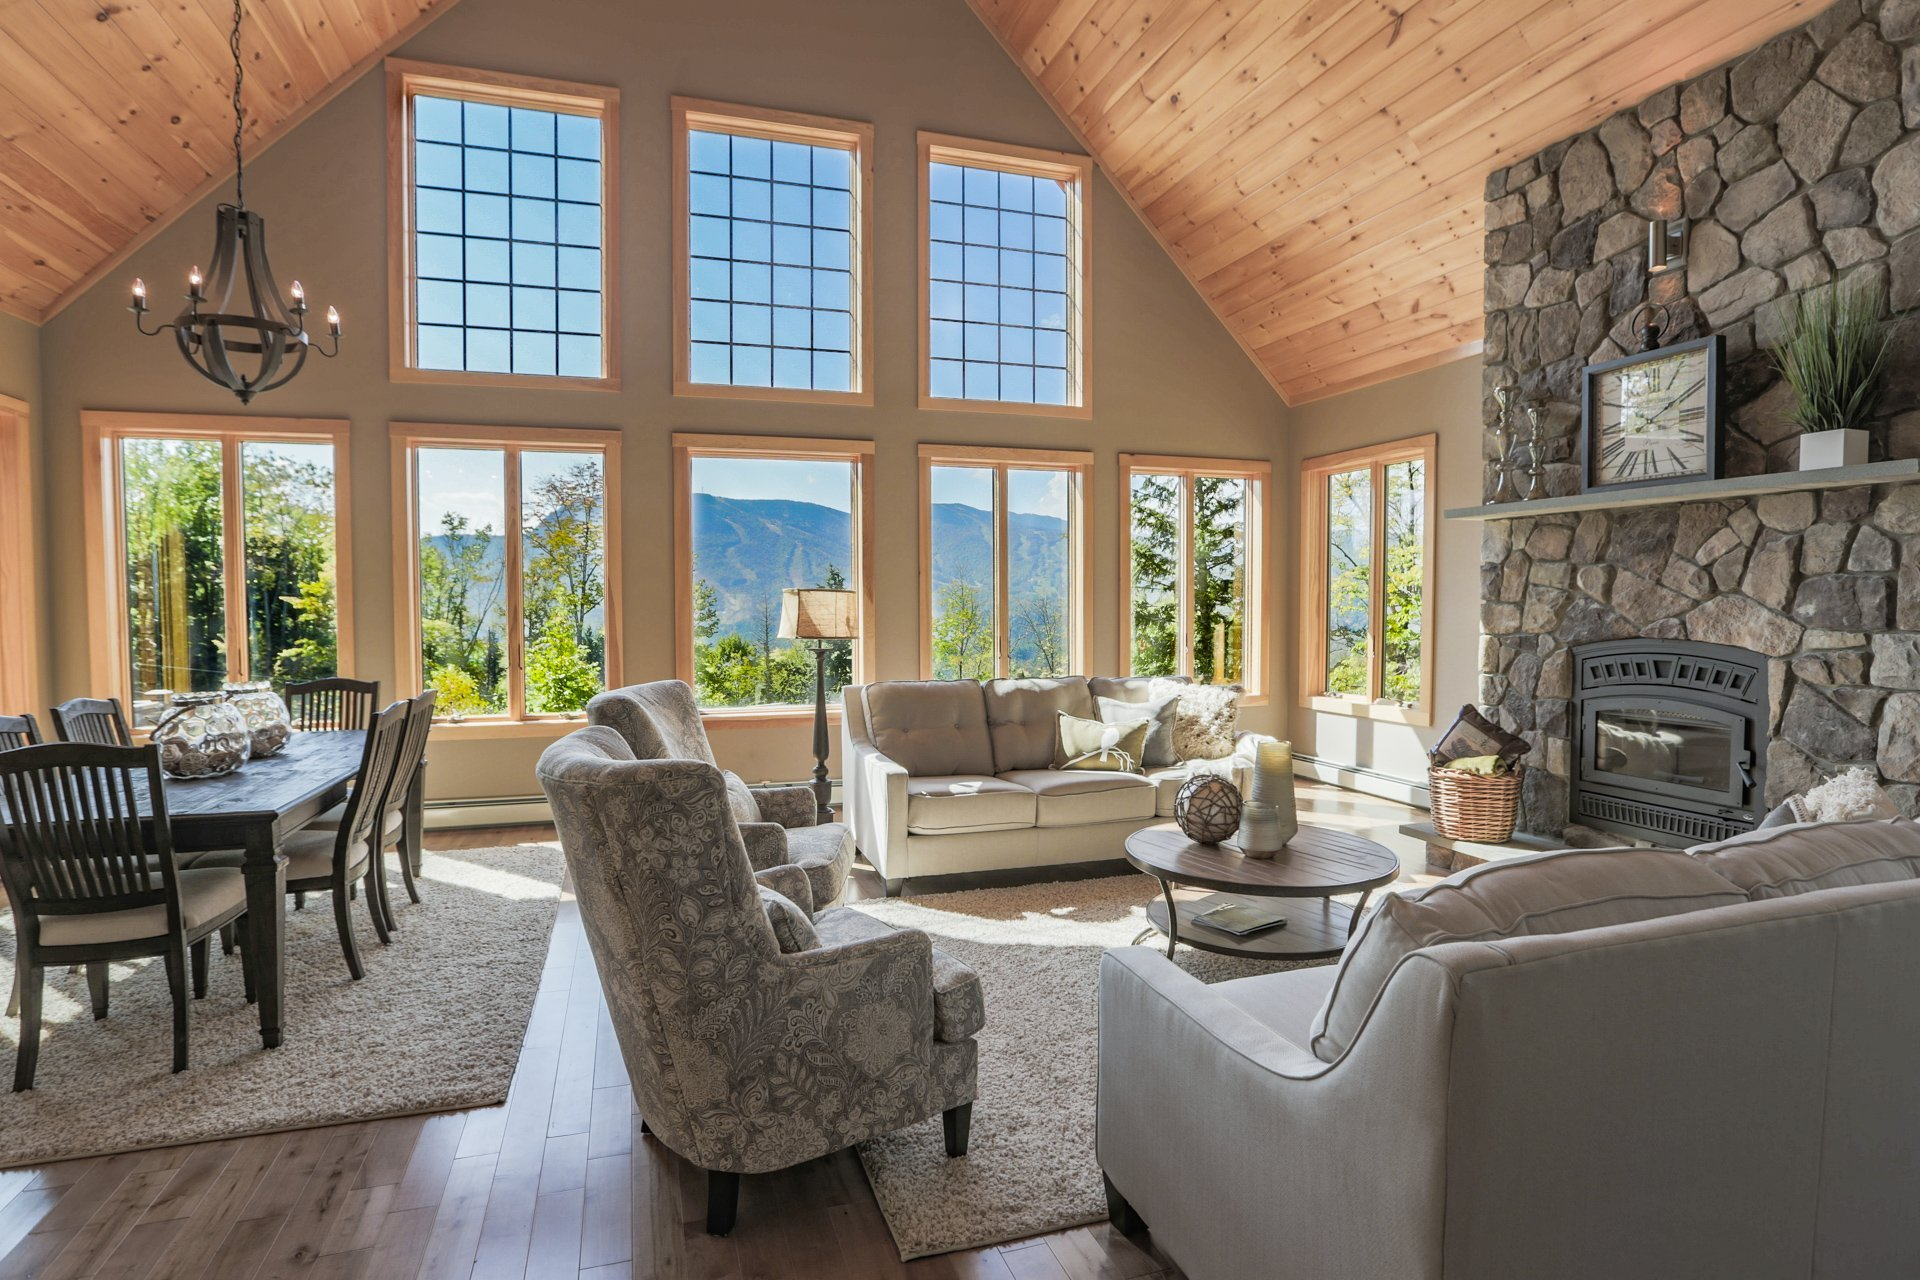 Open concept dining room and living area with stone hearth